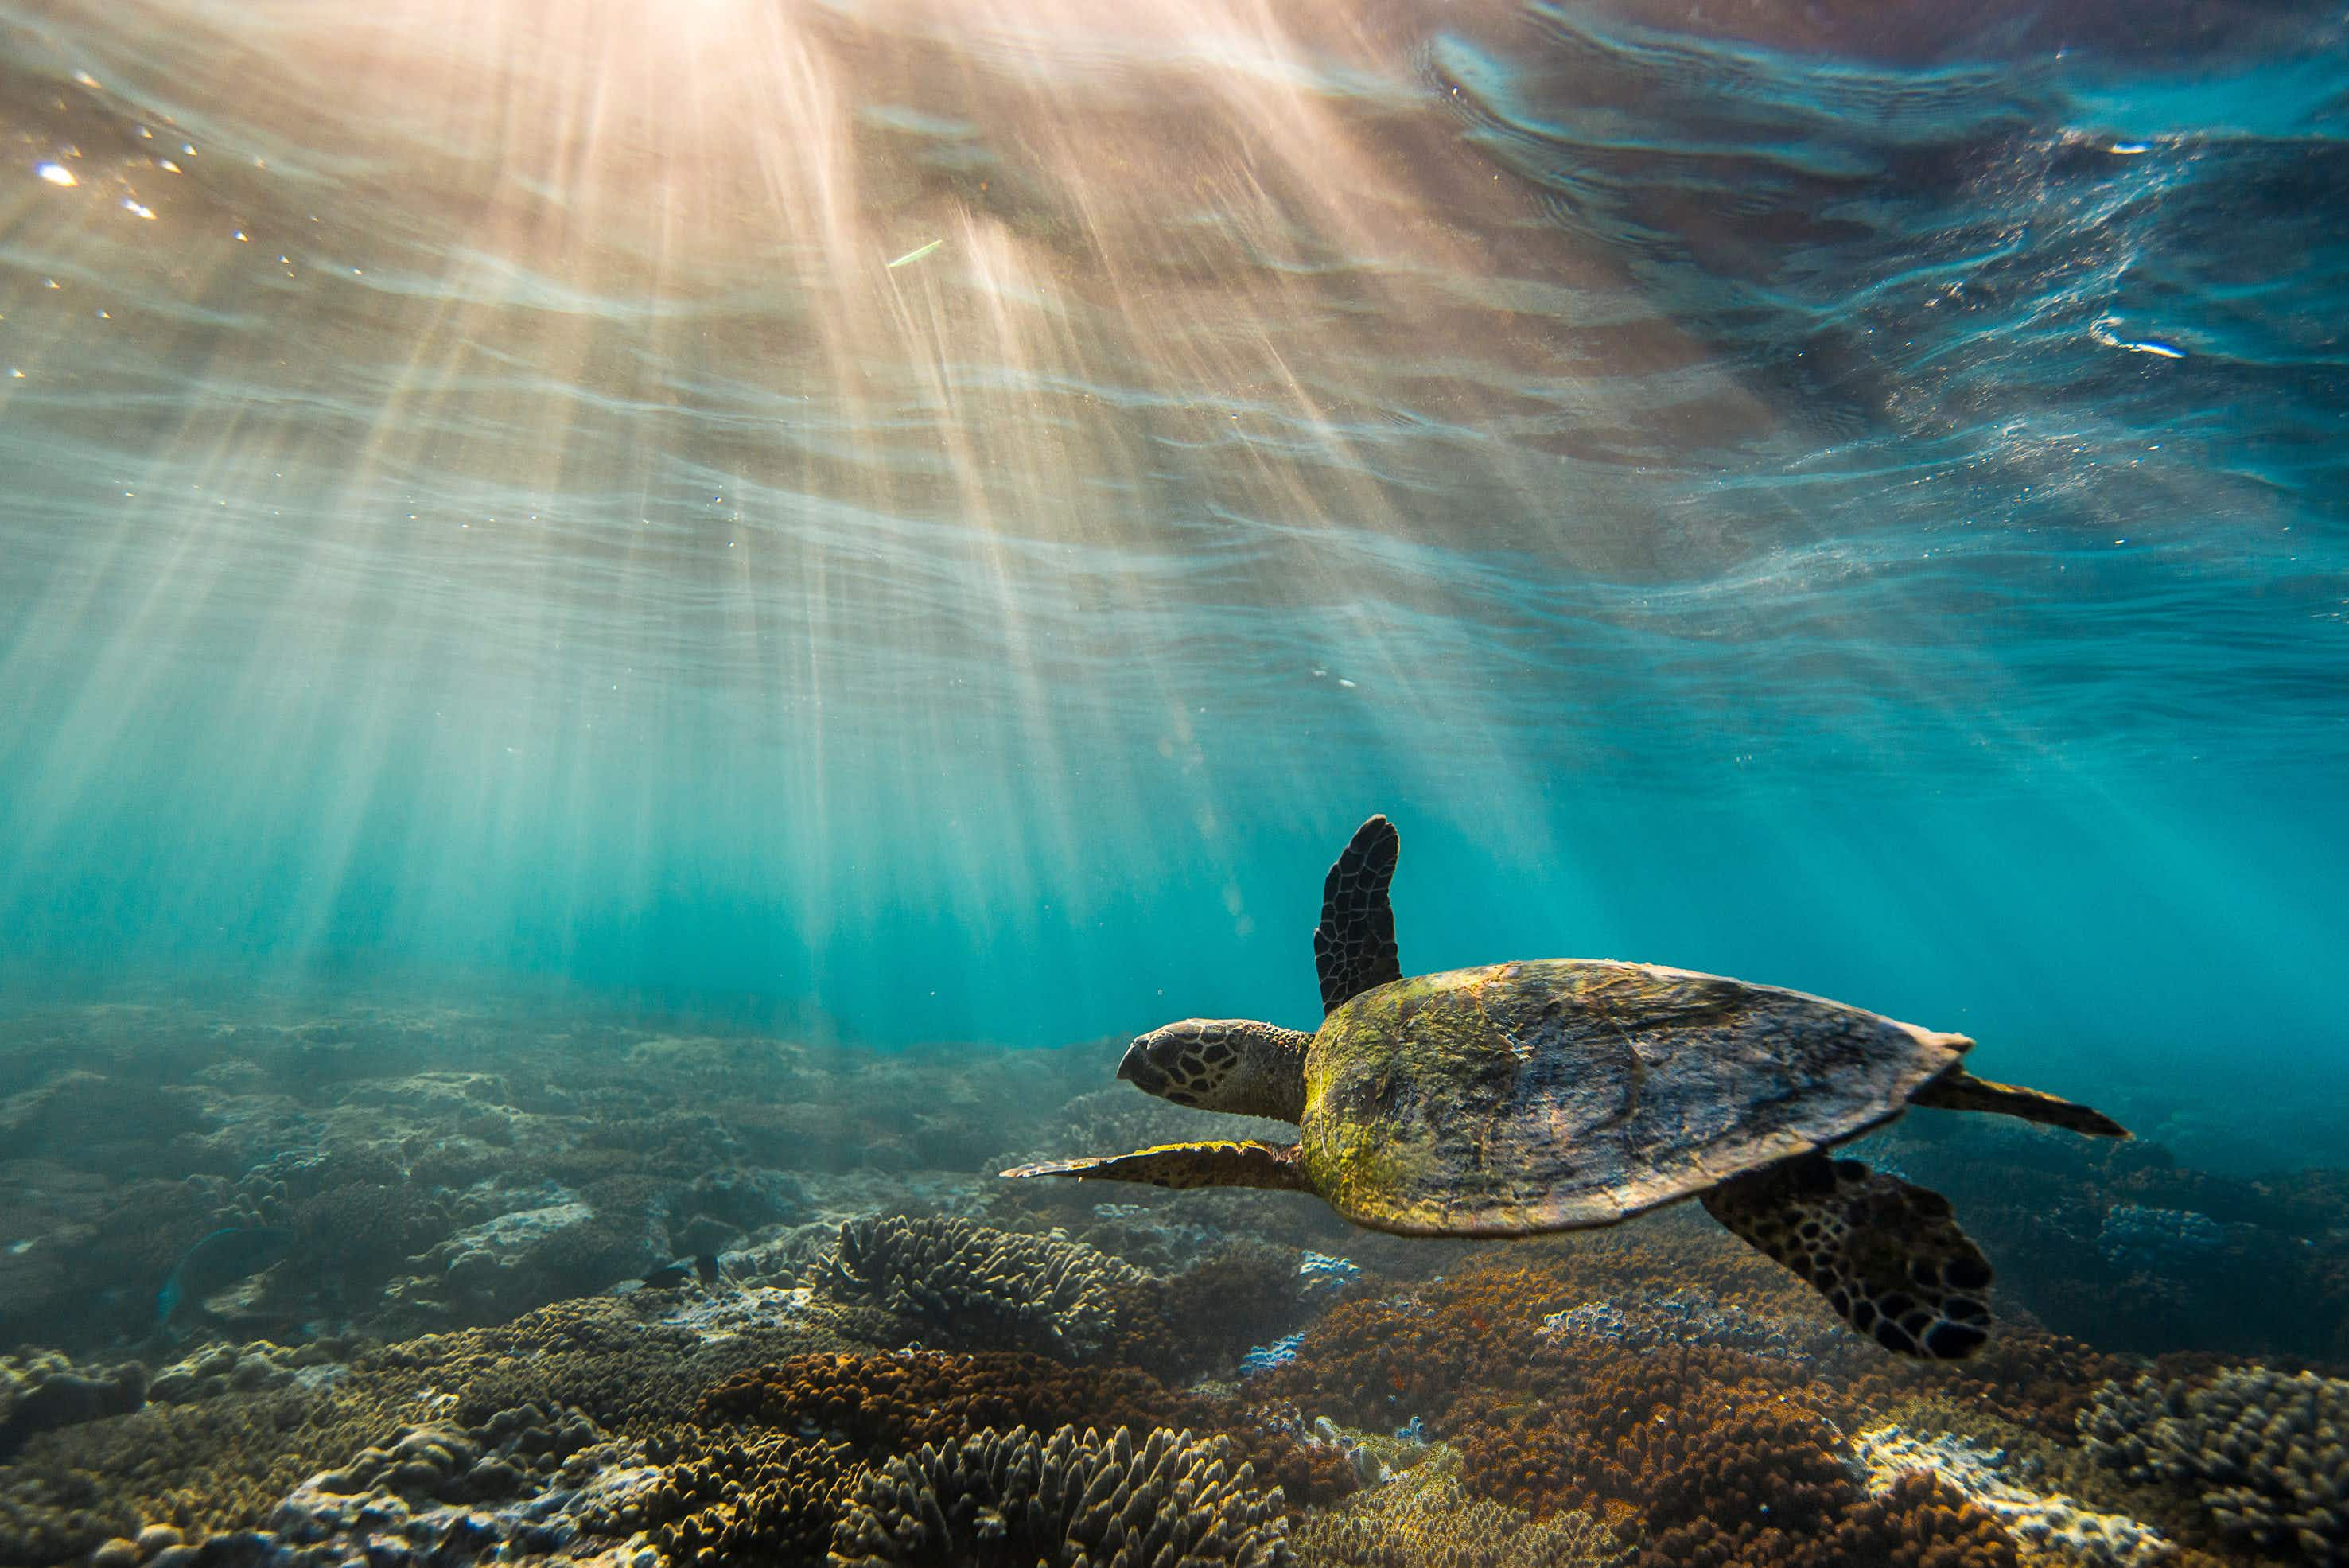 Australian accountants give the Great Barrier Reef an AU$56 billion price tag